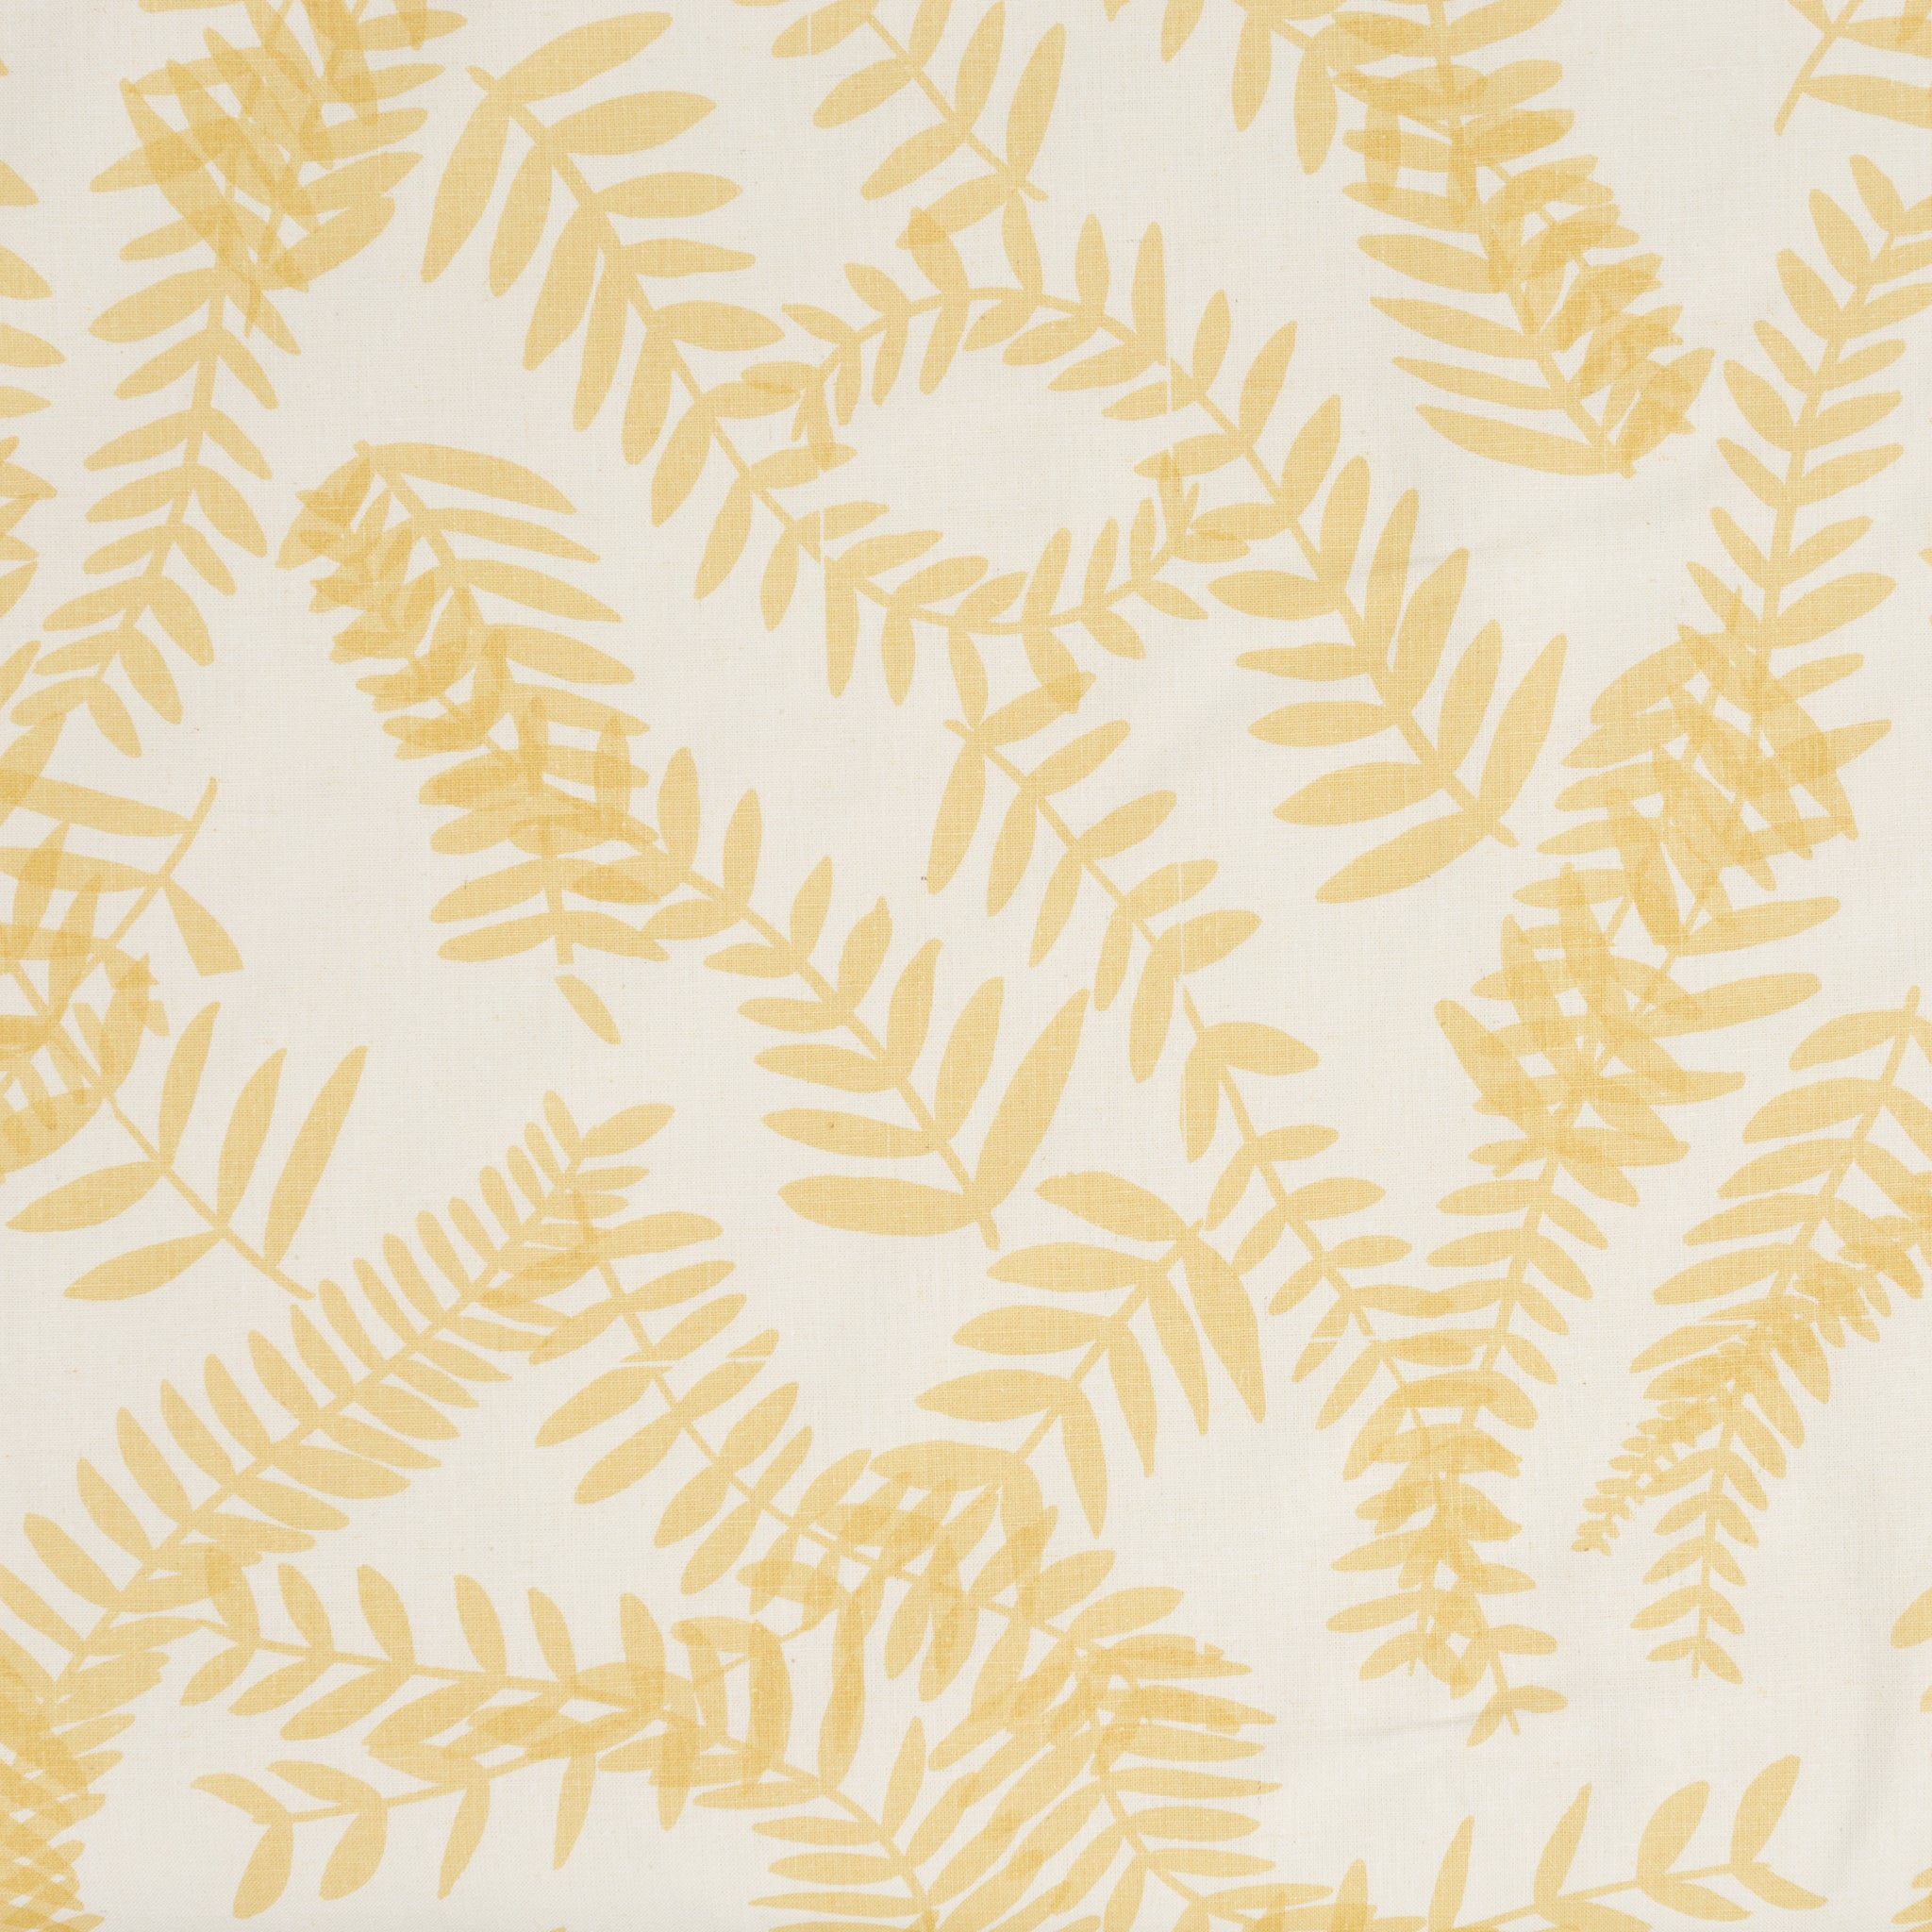 Ferns in Wheat - Light Weight